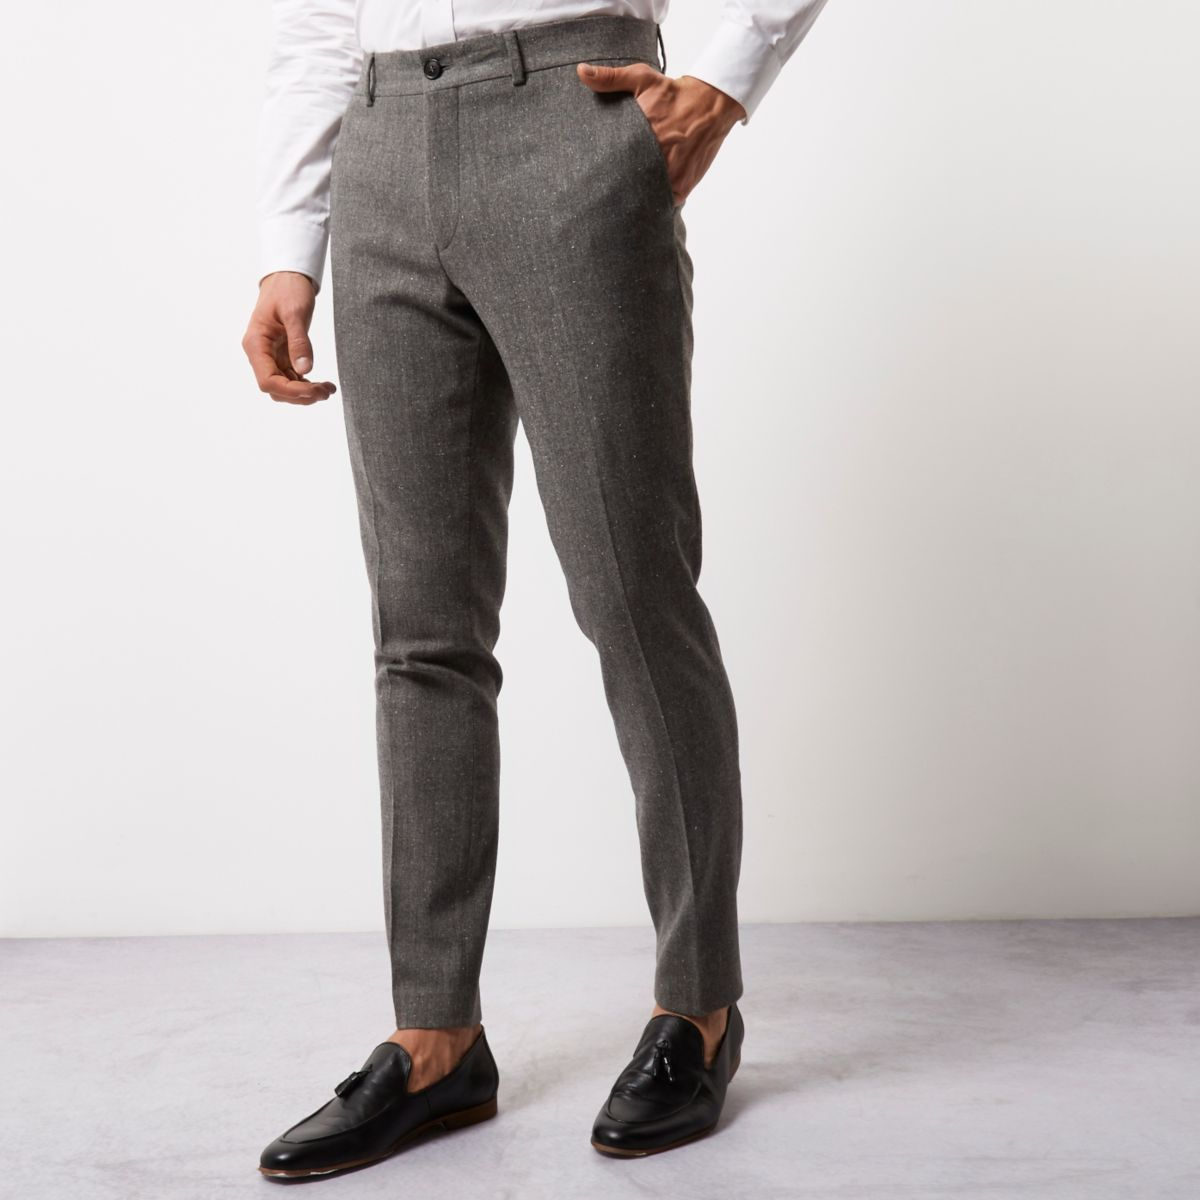 Versatile boys' pants for casual or formal looks. Plush pants are wide, comfortable and warm with a sporty design that boys aged 5 to 14 are sure to love. Chinos and dress pants for boys .